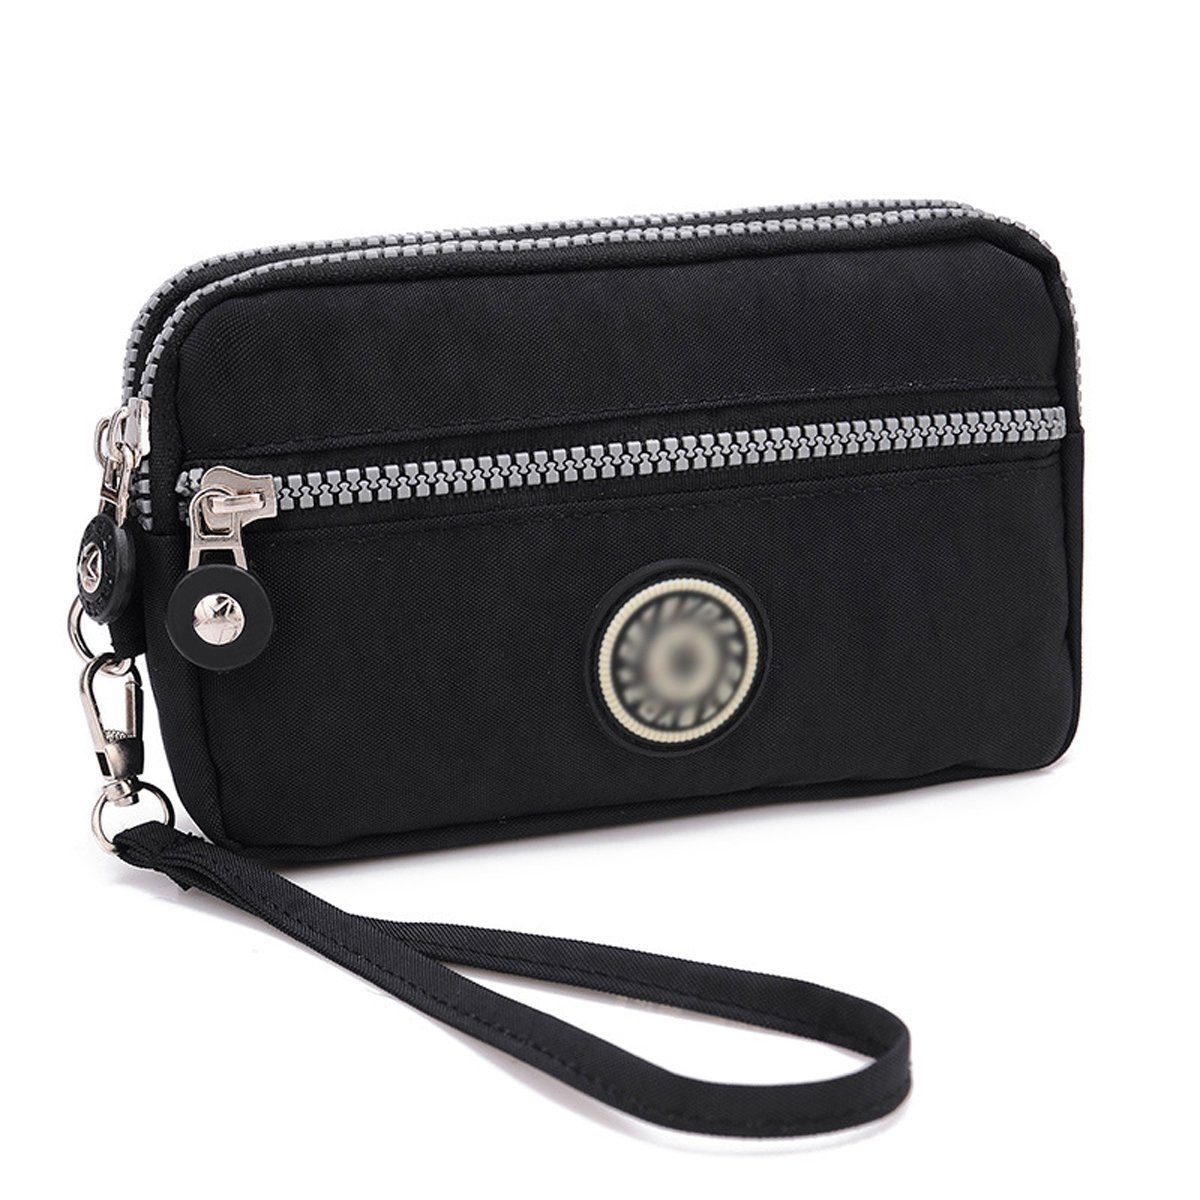 Bags us Women Girls Nylon Wristlet Bag Three Layers Wrist Handbag Large Coin Purse Wallet Clutch